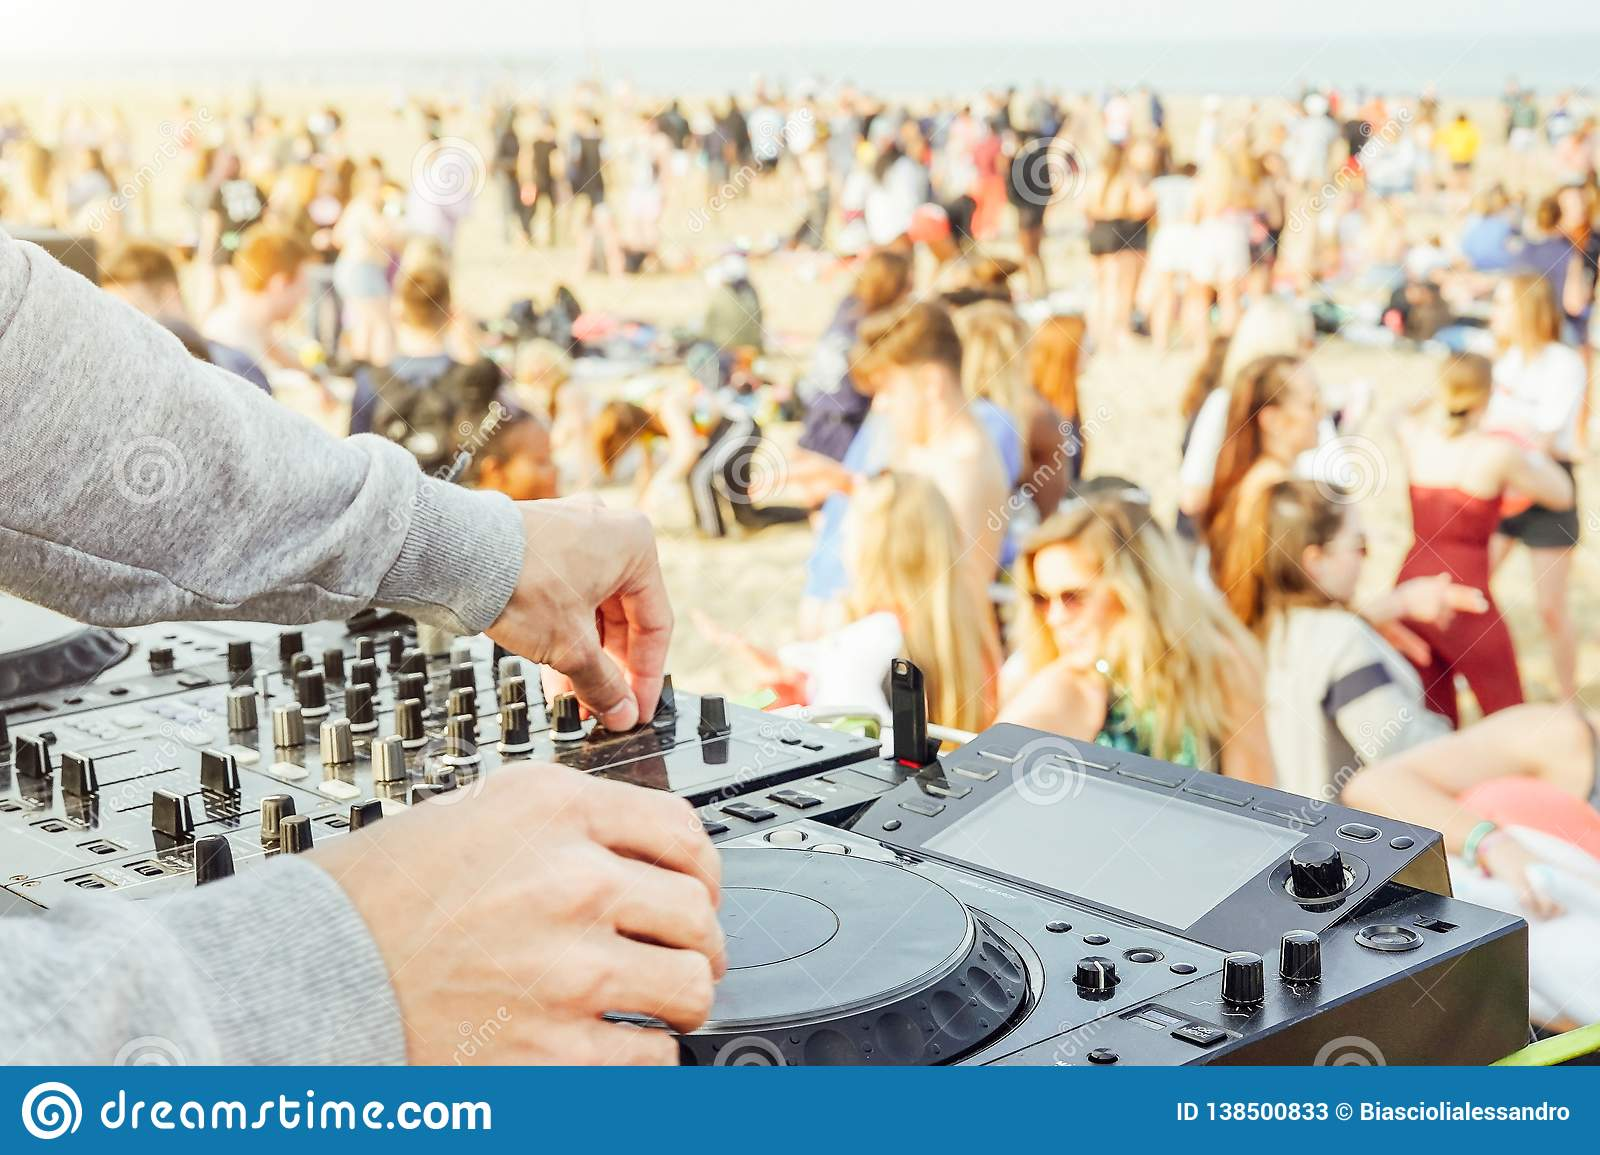 Close up of DJ`s hand playing music at turntable at beach party festival - Crowd people dancing and having fun in club outdoor -